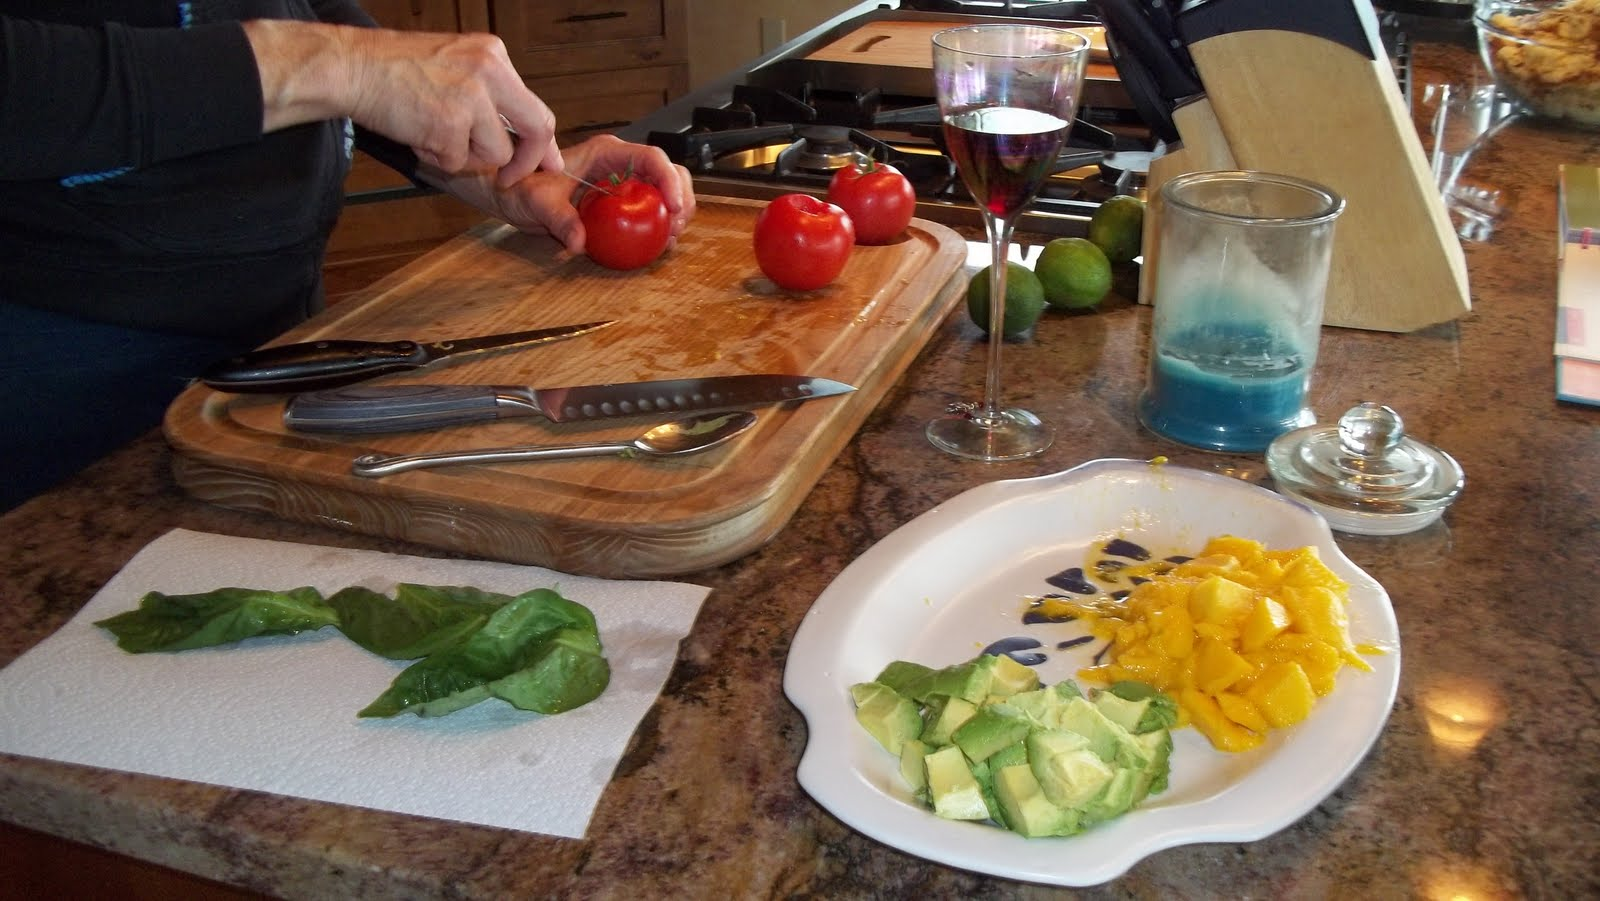 My Oh My!: Grilled Halibut with Mango-Avocado Salsa